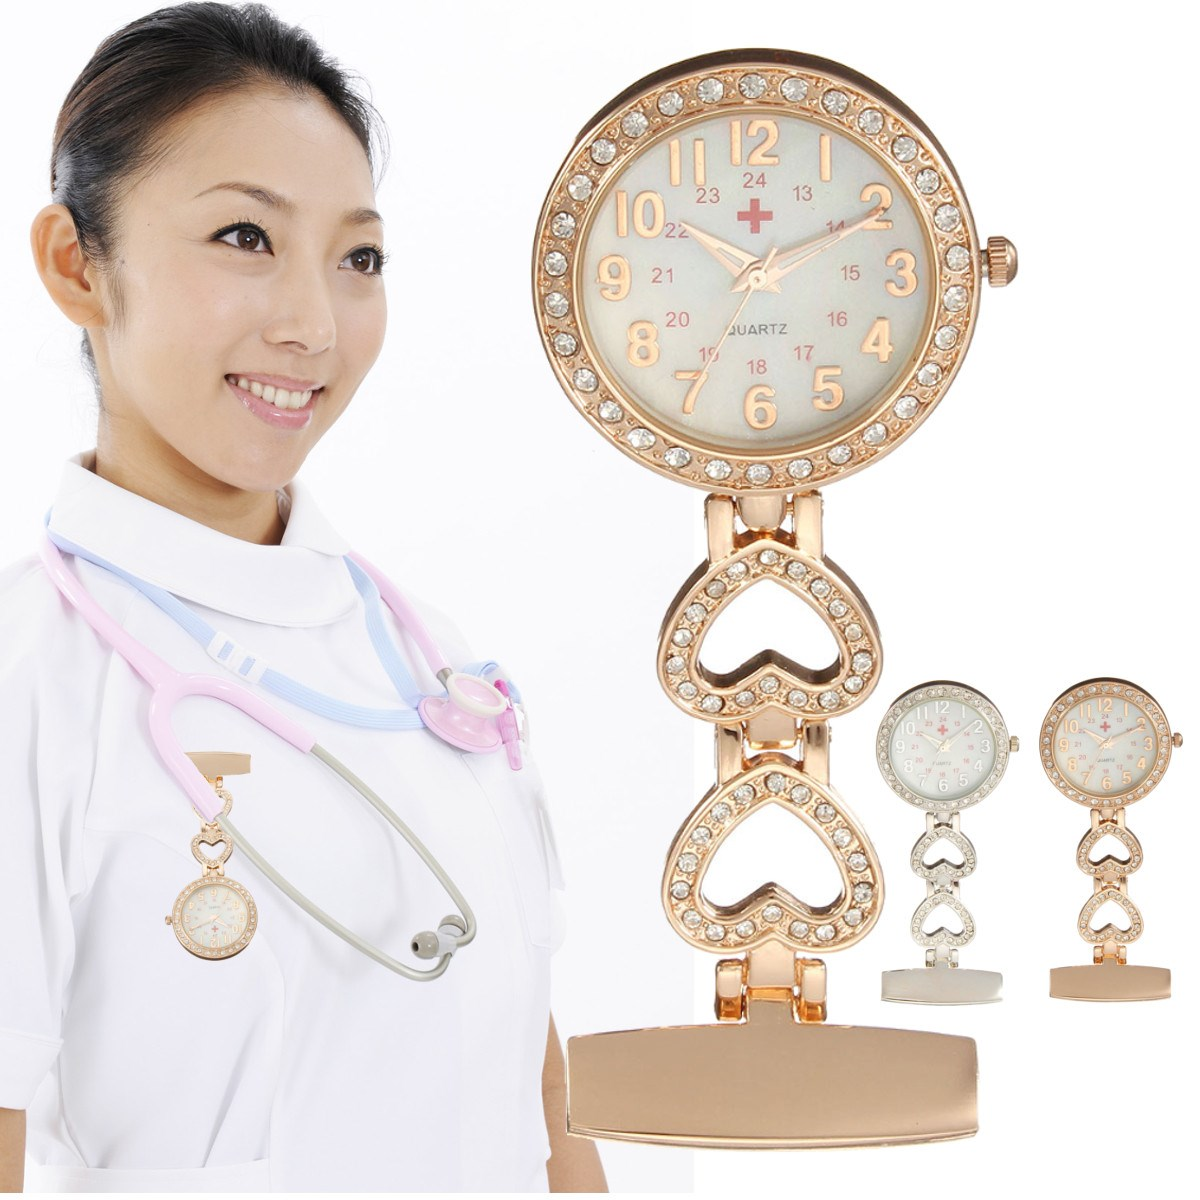 Clip-on Fob Quartz Brooch Heart Shaped Hanging Nurse Pin Watch Crystal Men Women Steel Fashion Vest-Pocket Watches Clock new luxury round dial clip on fob nurse pocket watch quartz brooch hanging fashion men women luminous pin watch steel relogio